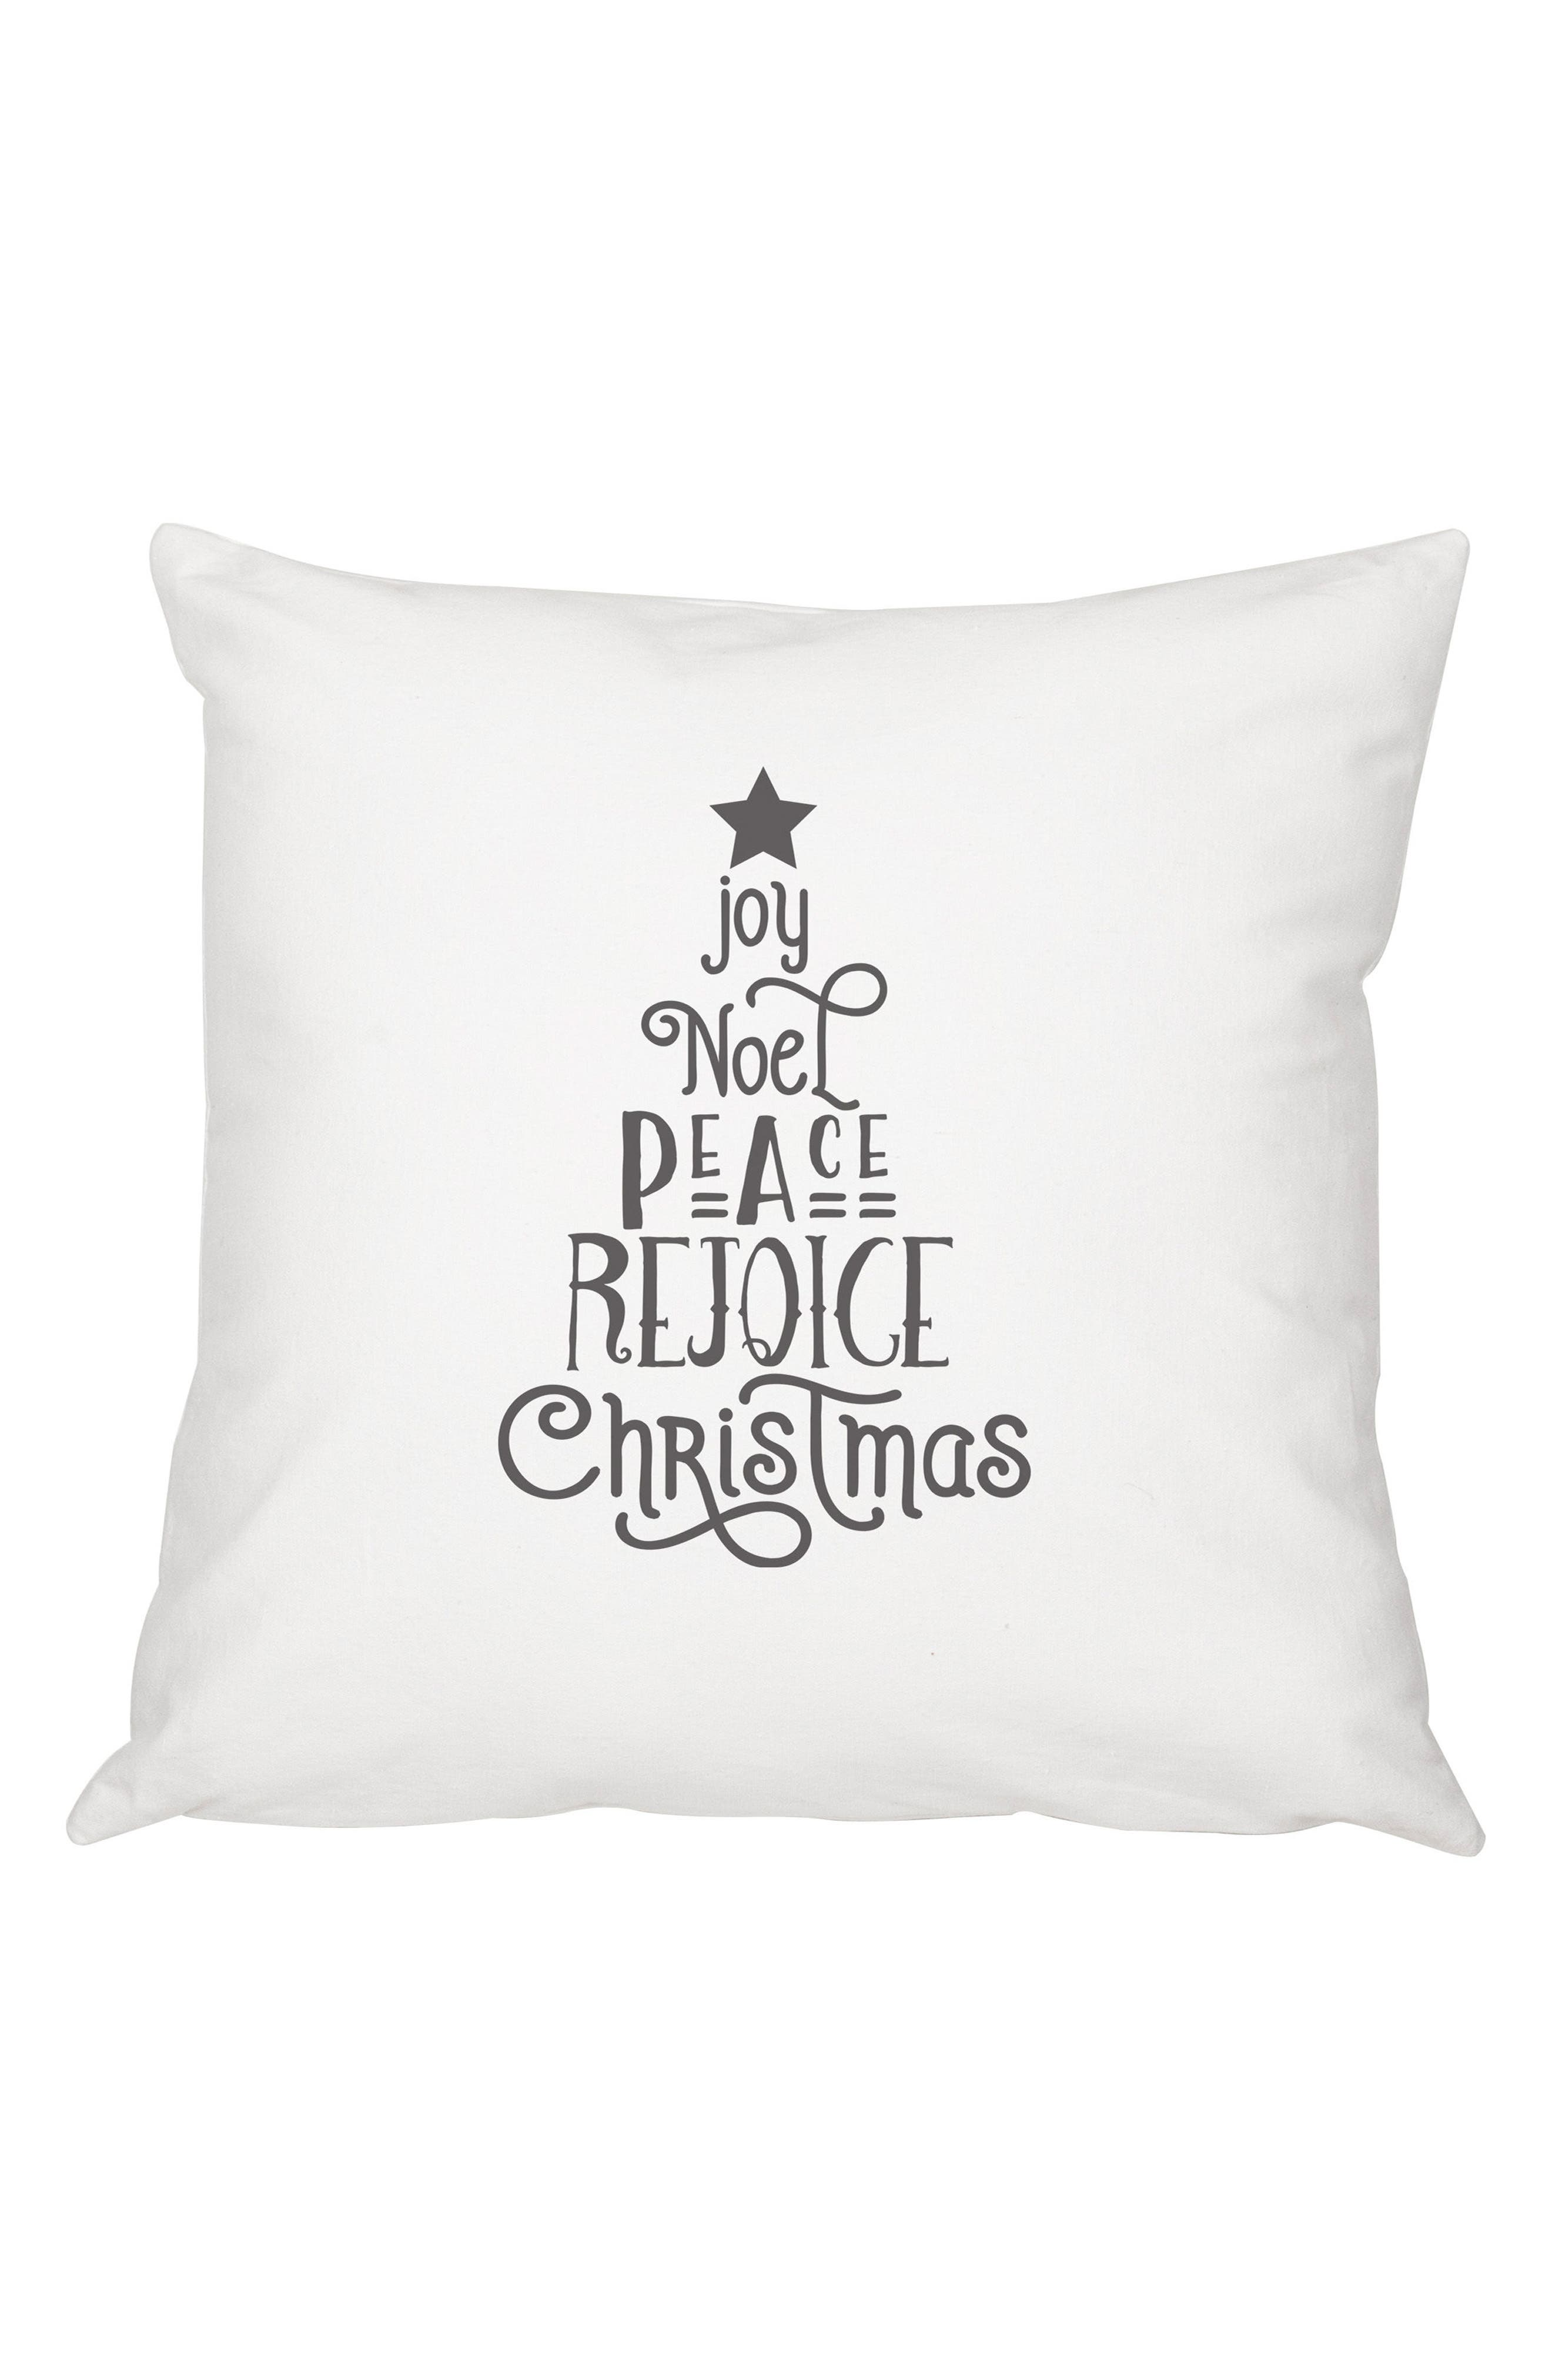 Christmas Tree Accent Pillow,                             Main thumbnail 1, color,                             020